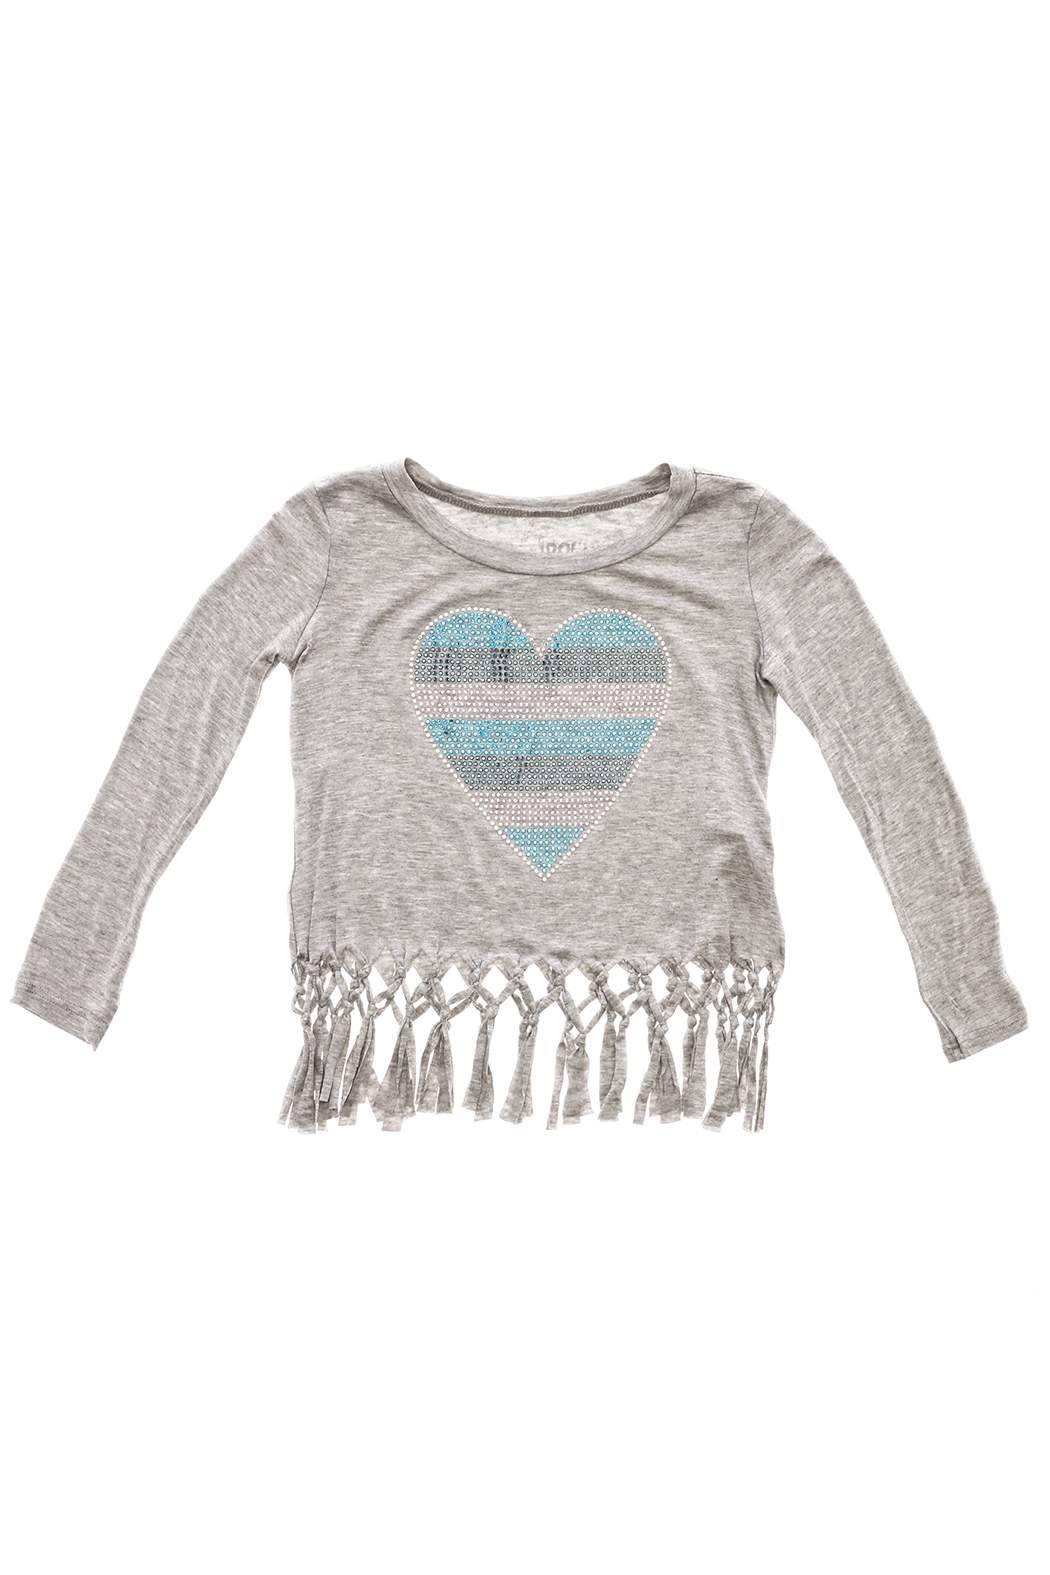 Rock Candy Jeweled Heart Fringe Top - Main Image